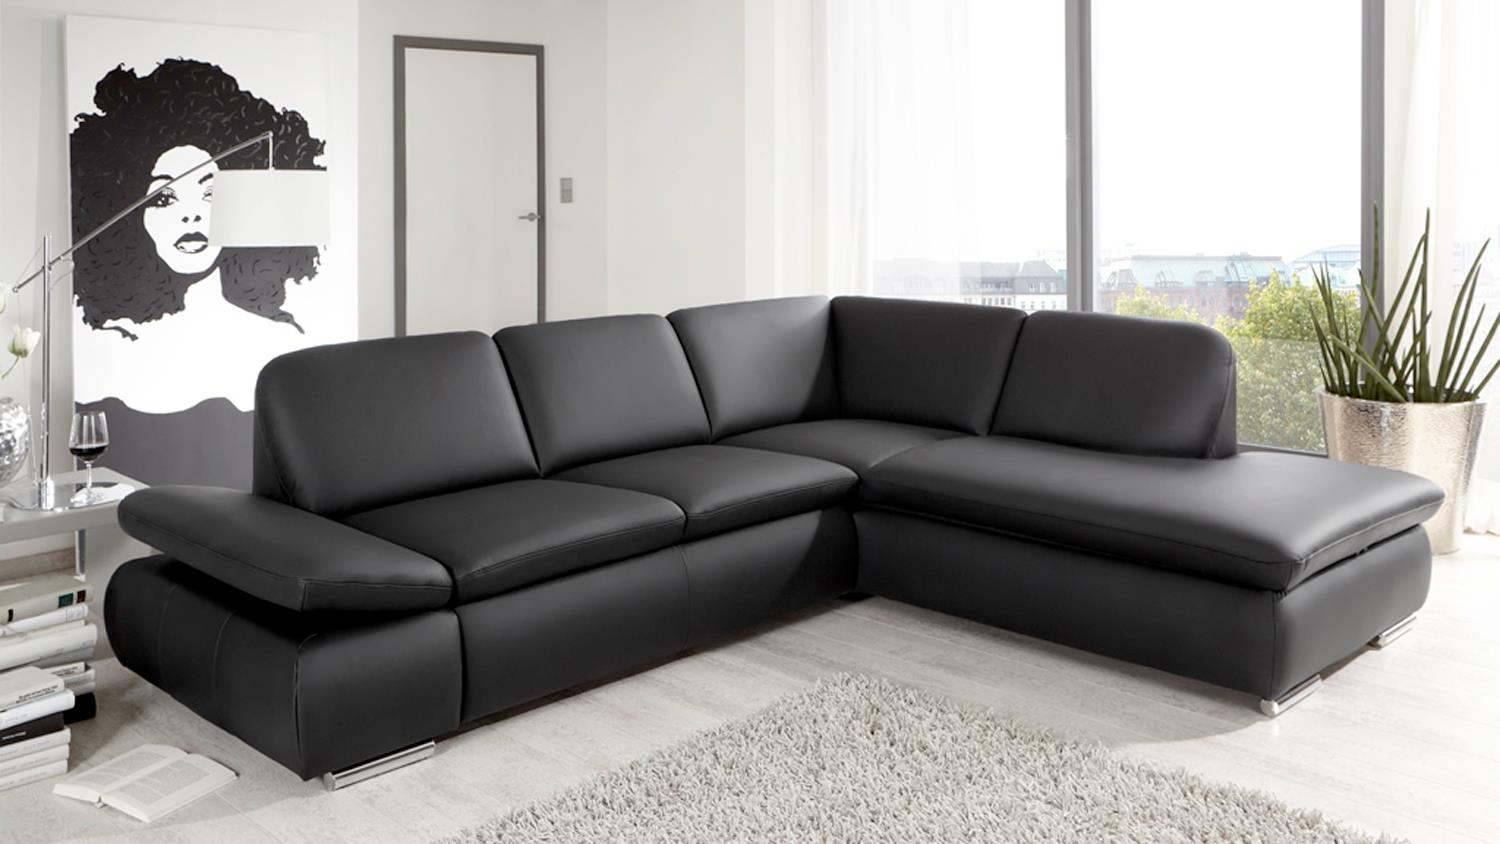 ecksofa vigo in schwarz mit federung und funktion 264x208. Black Bedroom Furniture Sets. Home Design Ideas